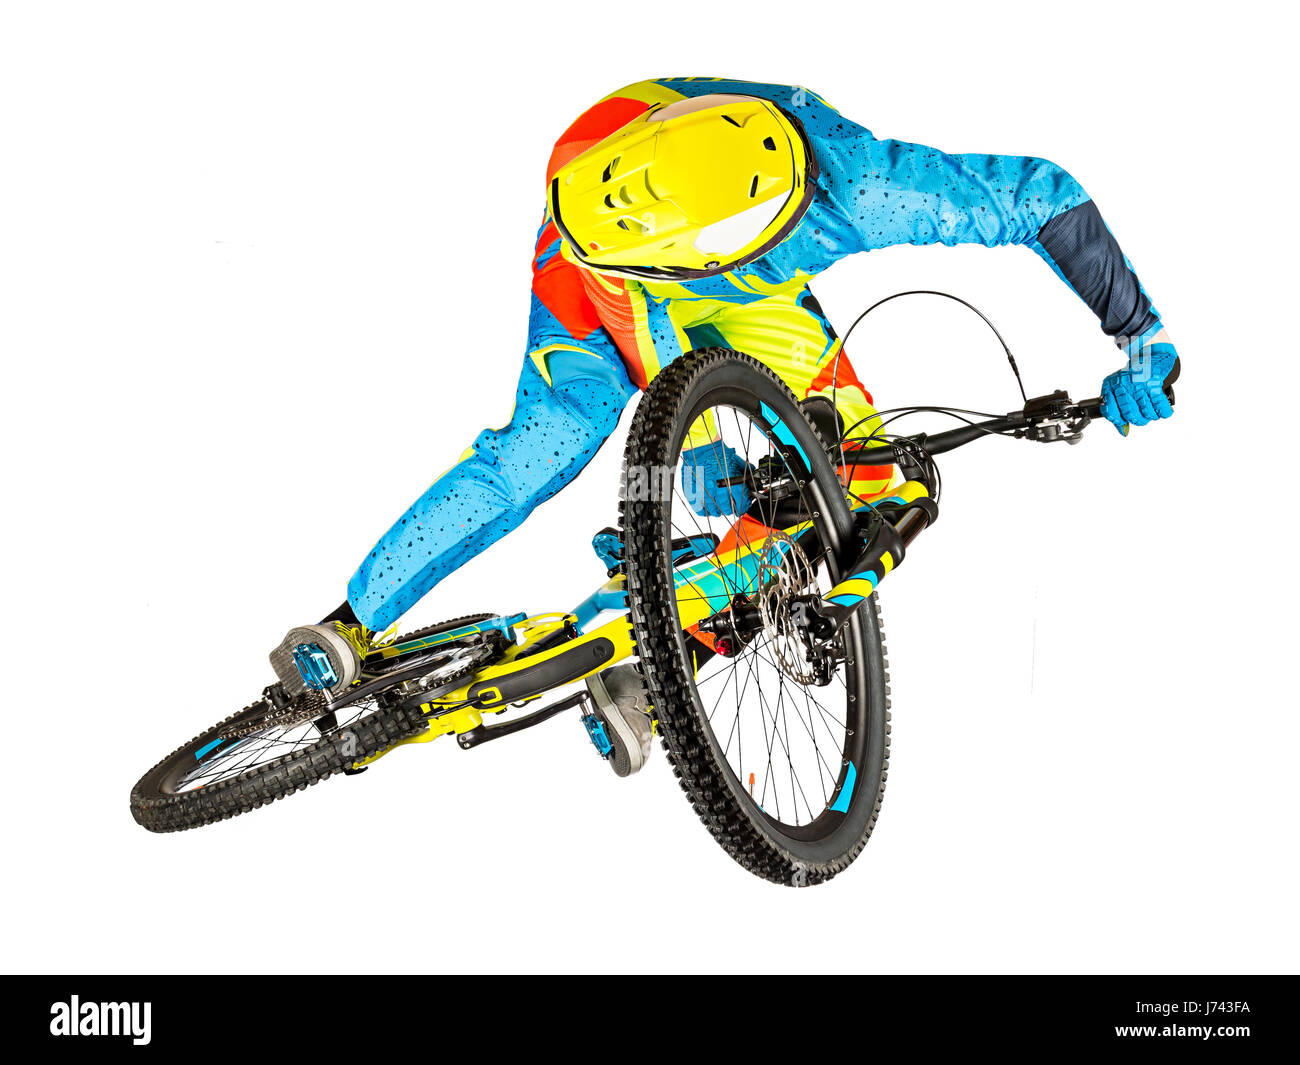 e0a837c18c8 mountain bike freeride downhill rider extreme whip jump isolated on white  background - Stock Image